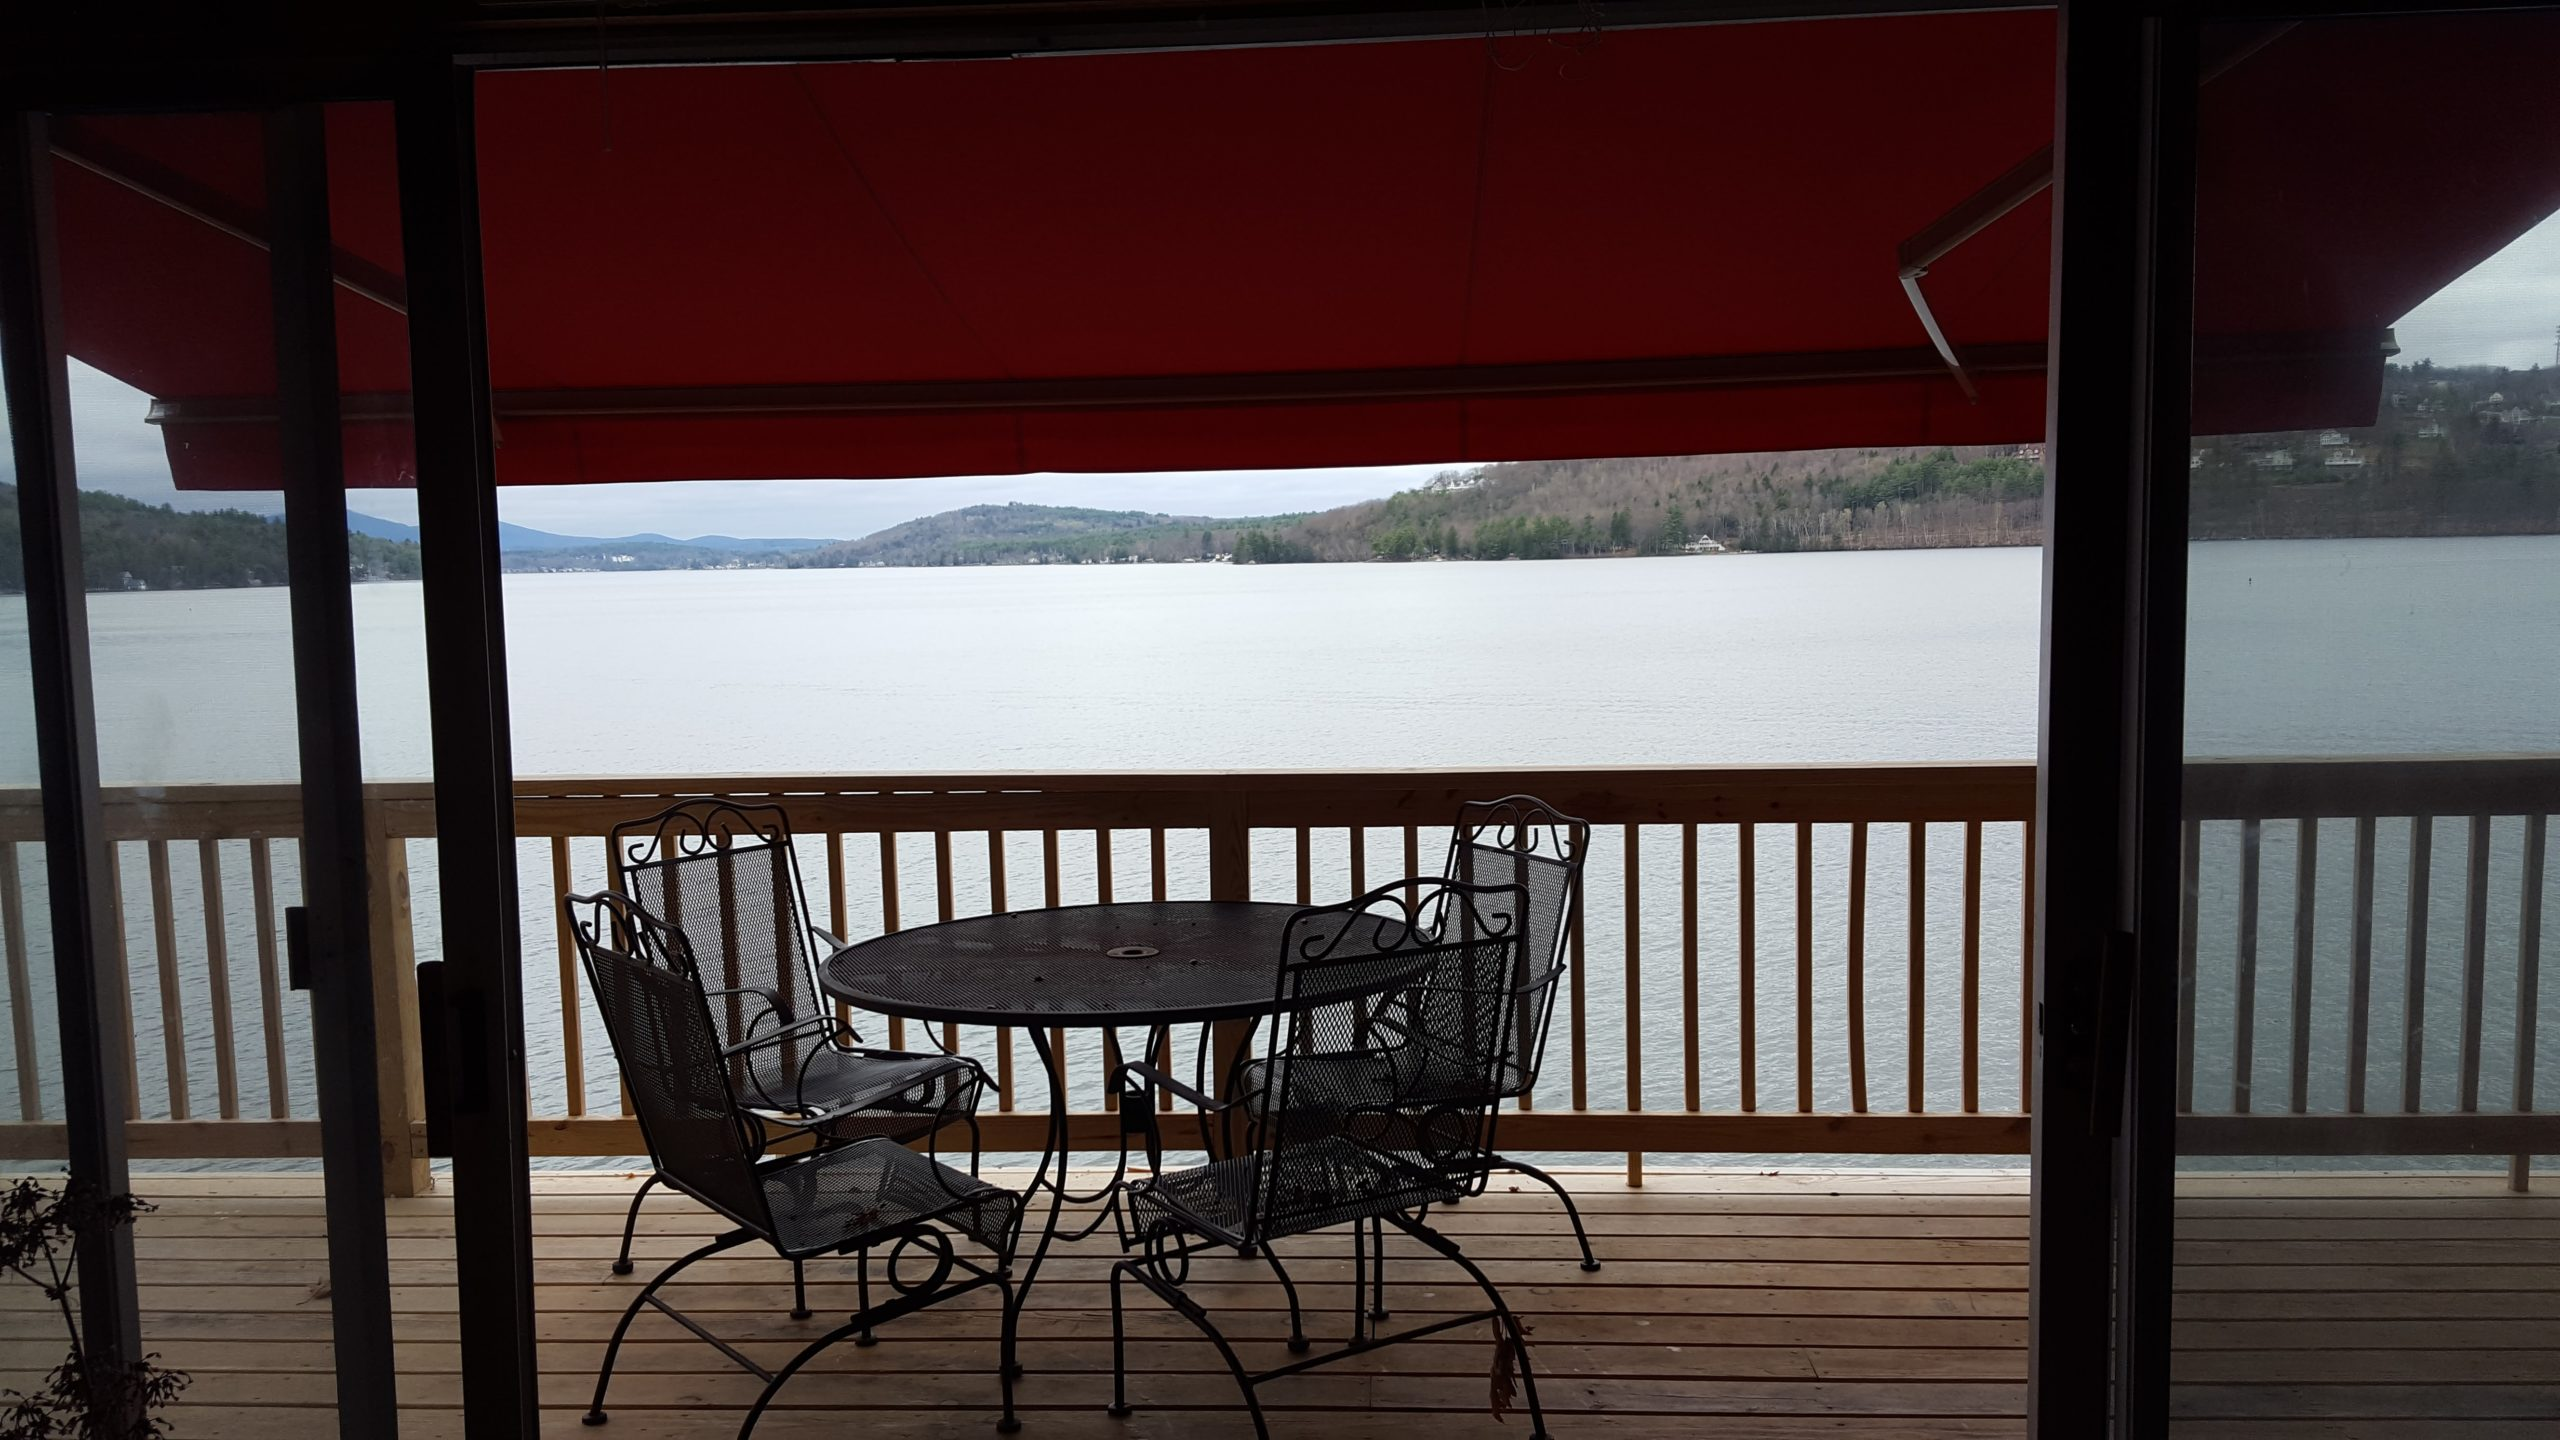 outdoor red awning on a wood deck